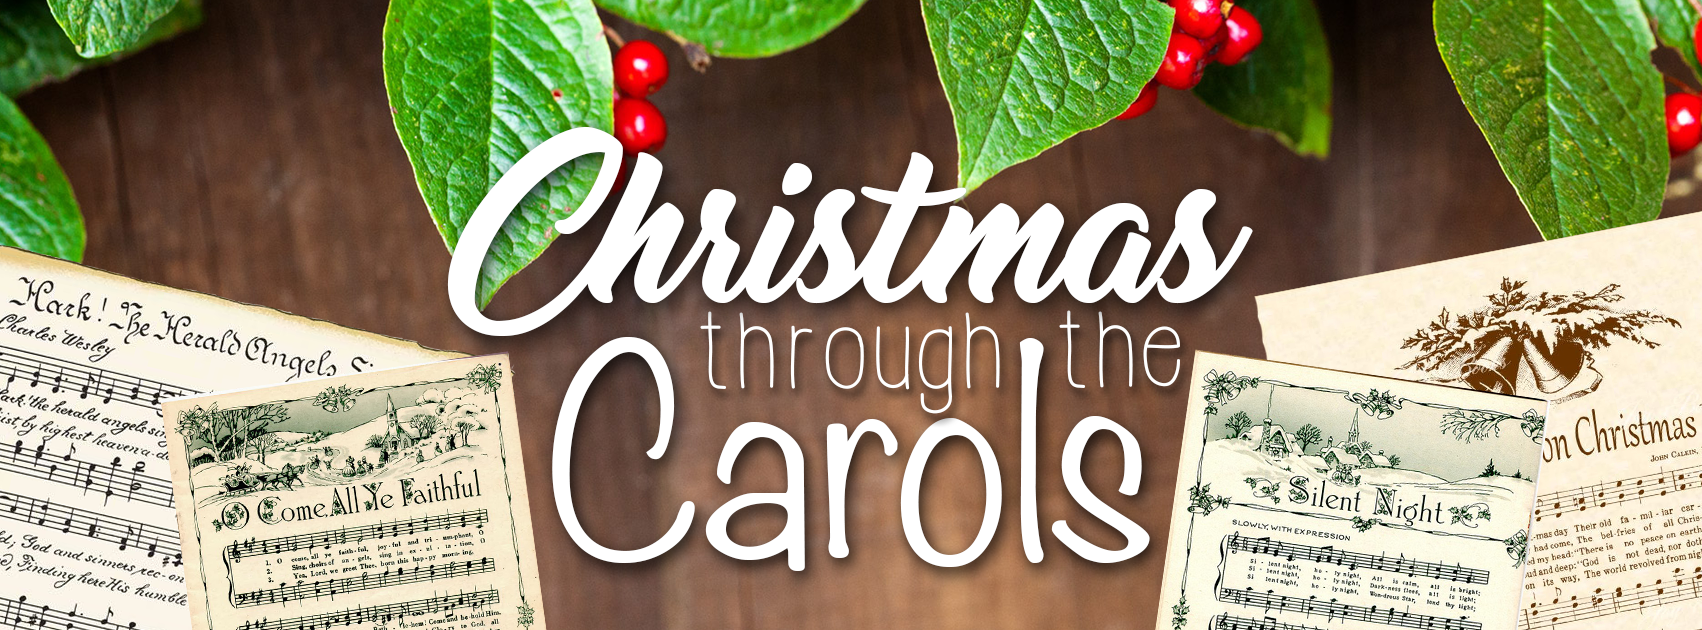 Christmas Through The Carols, Part 1: O Come, O Come Emmanuel